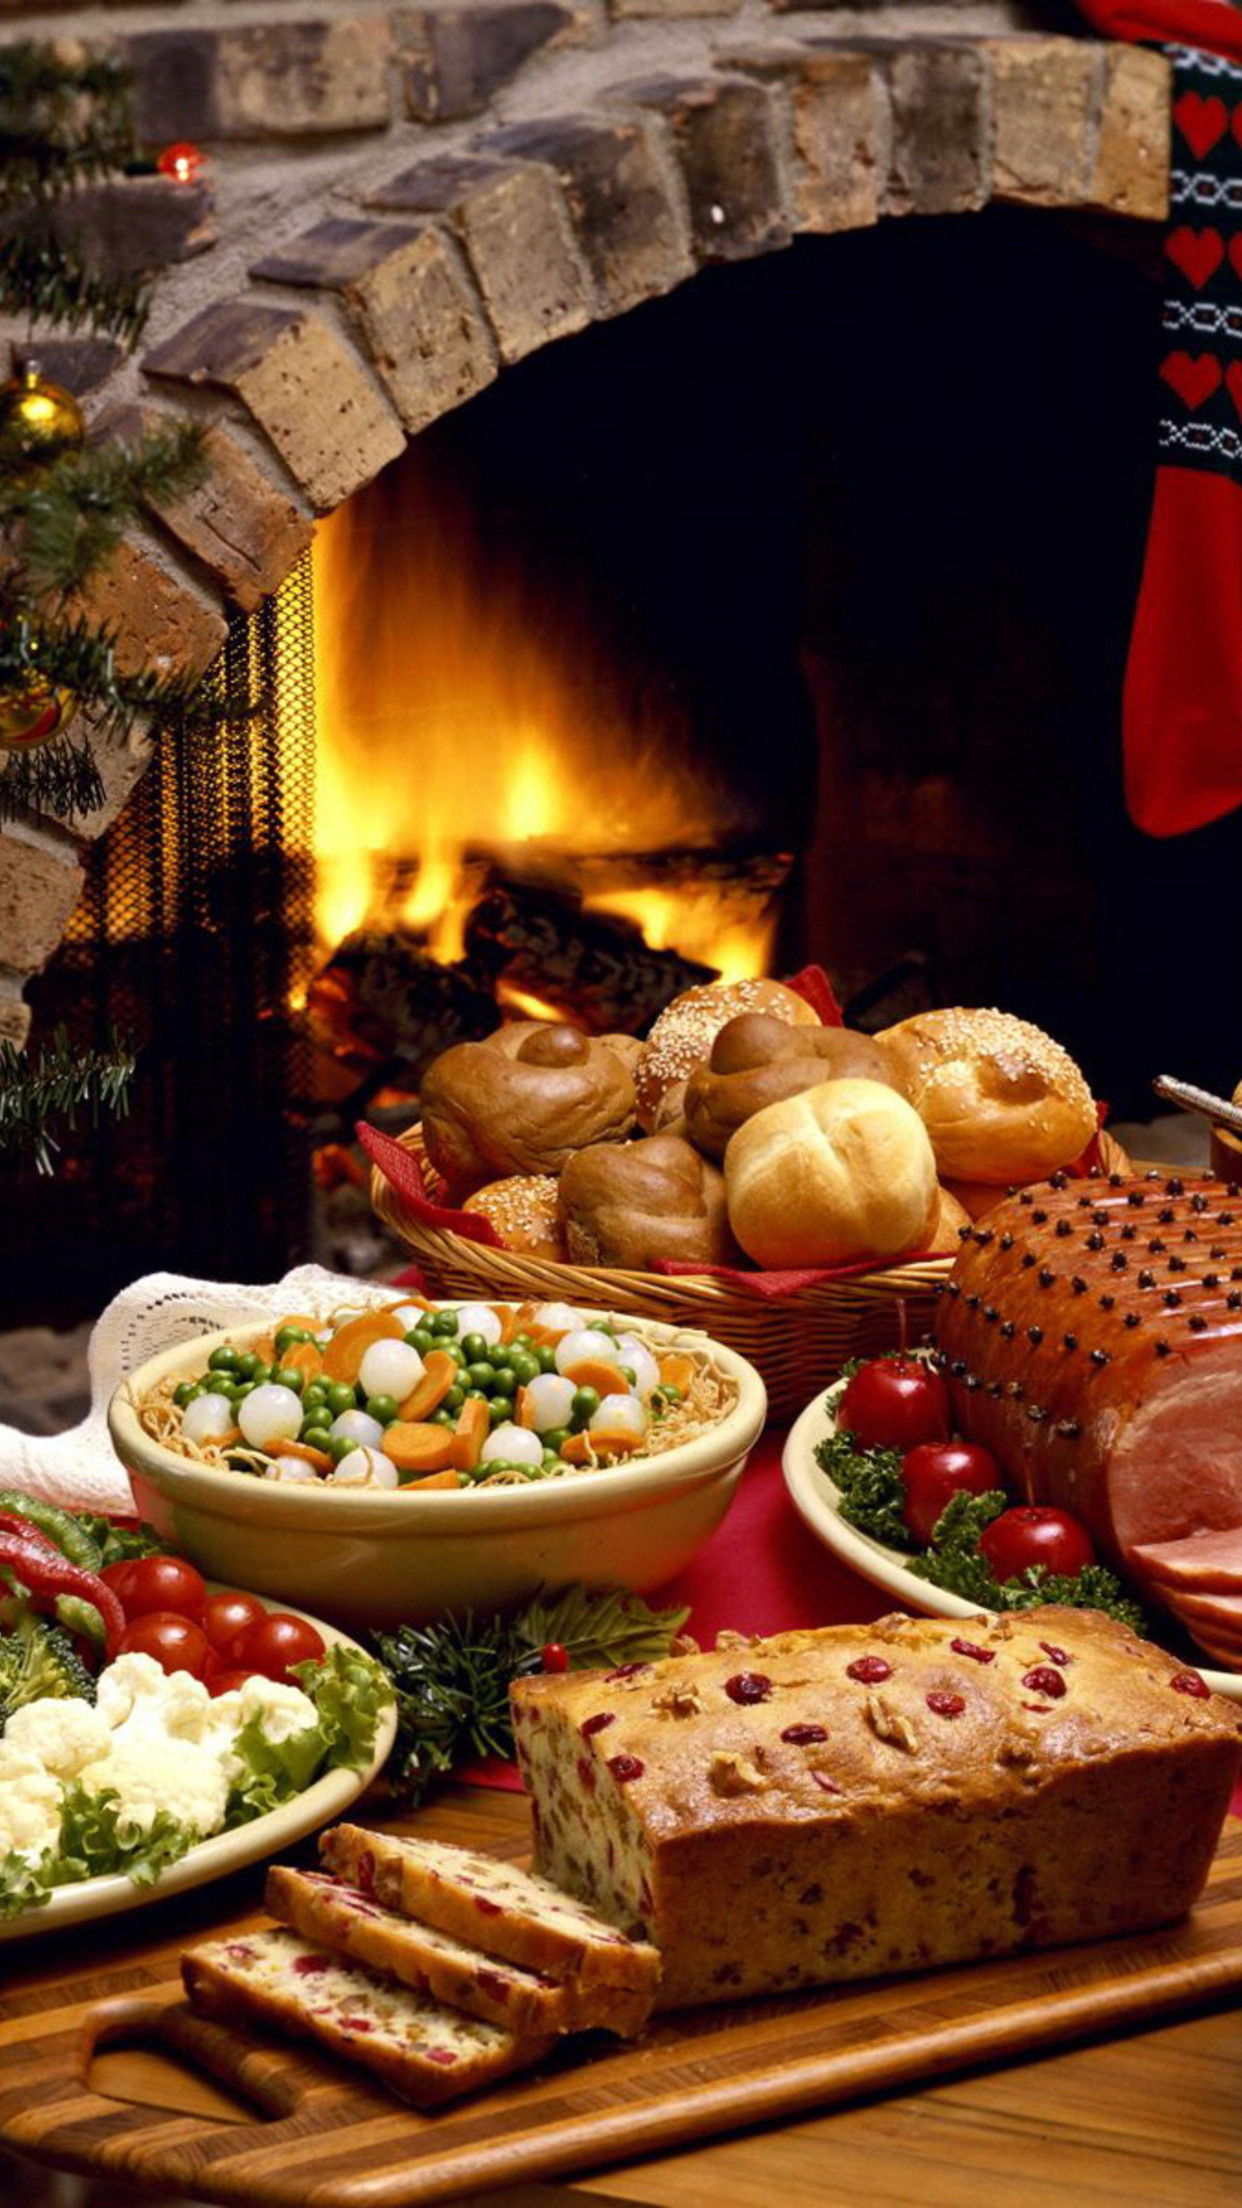 food fireplace 3Wallpapers iPhone Parallax Food Fireplace